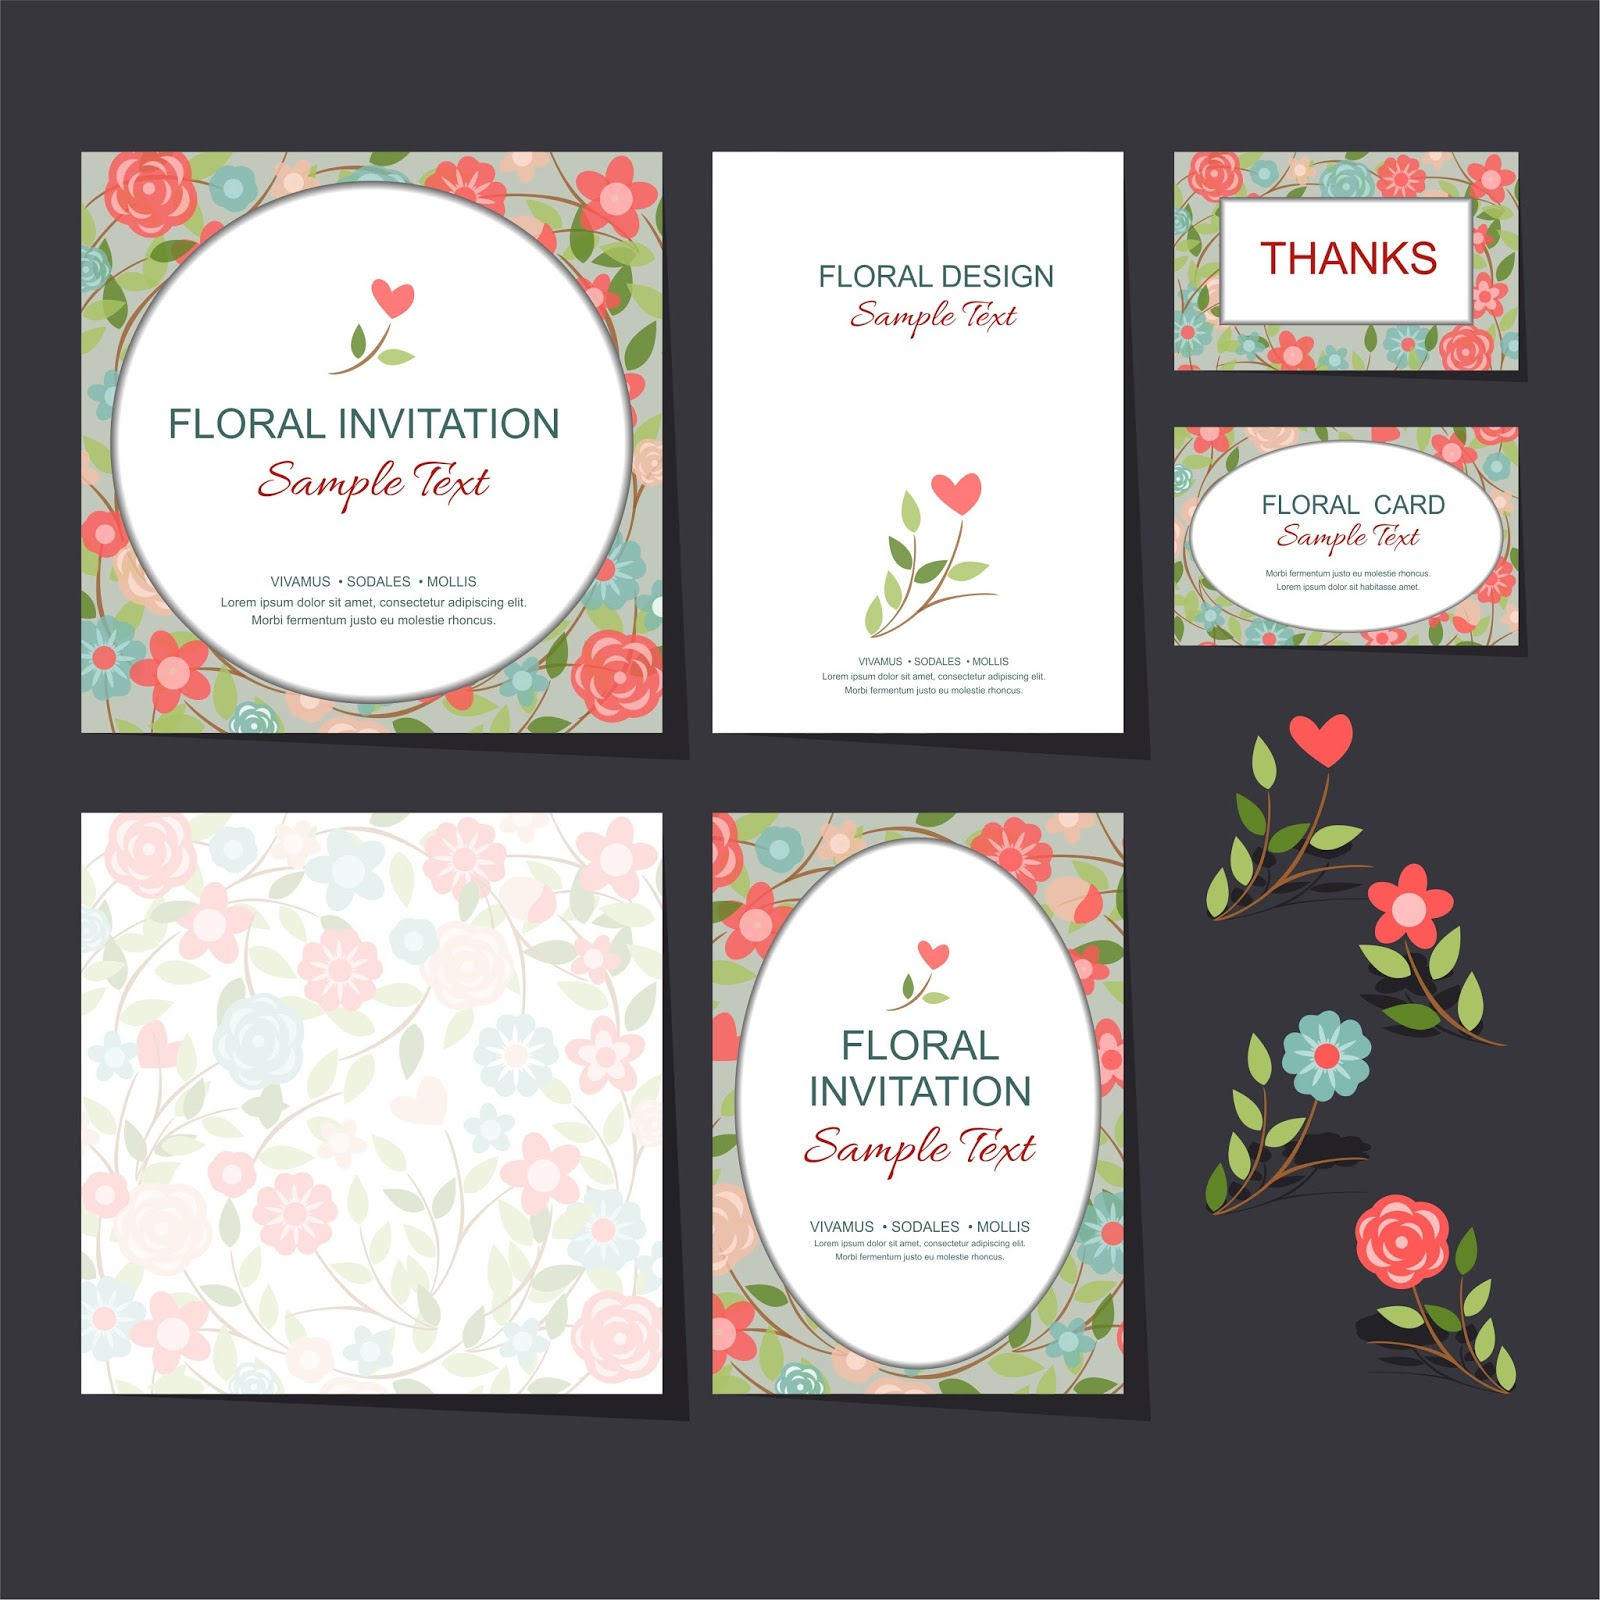 Customize Wedding Invitations | Township Printers